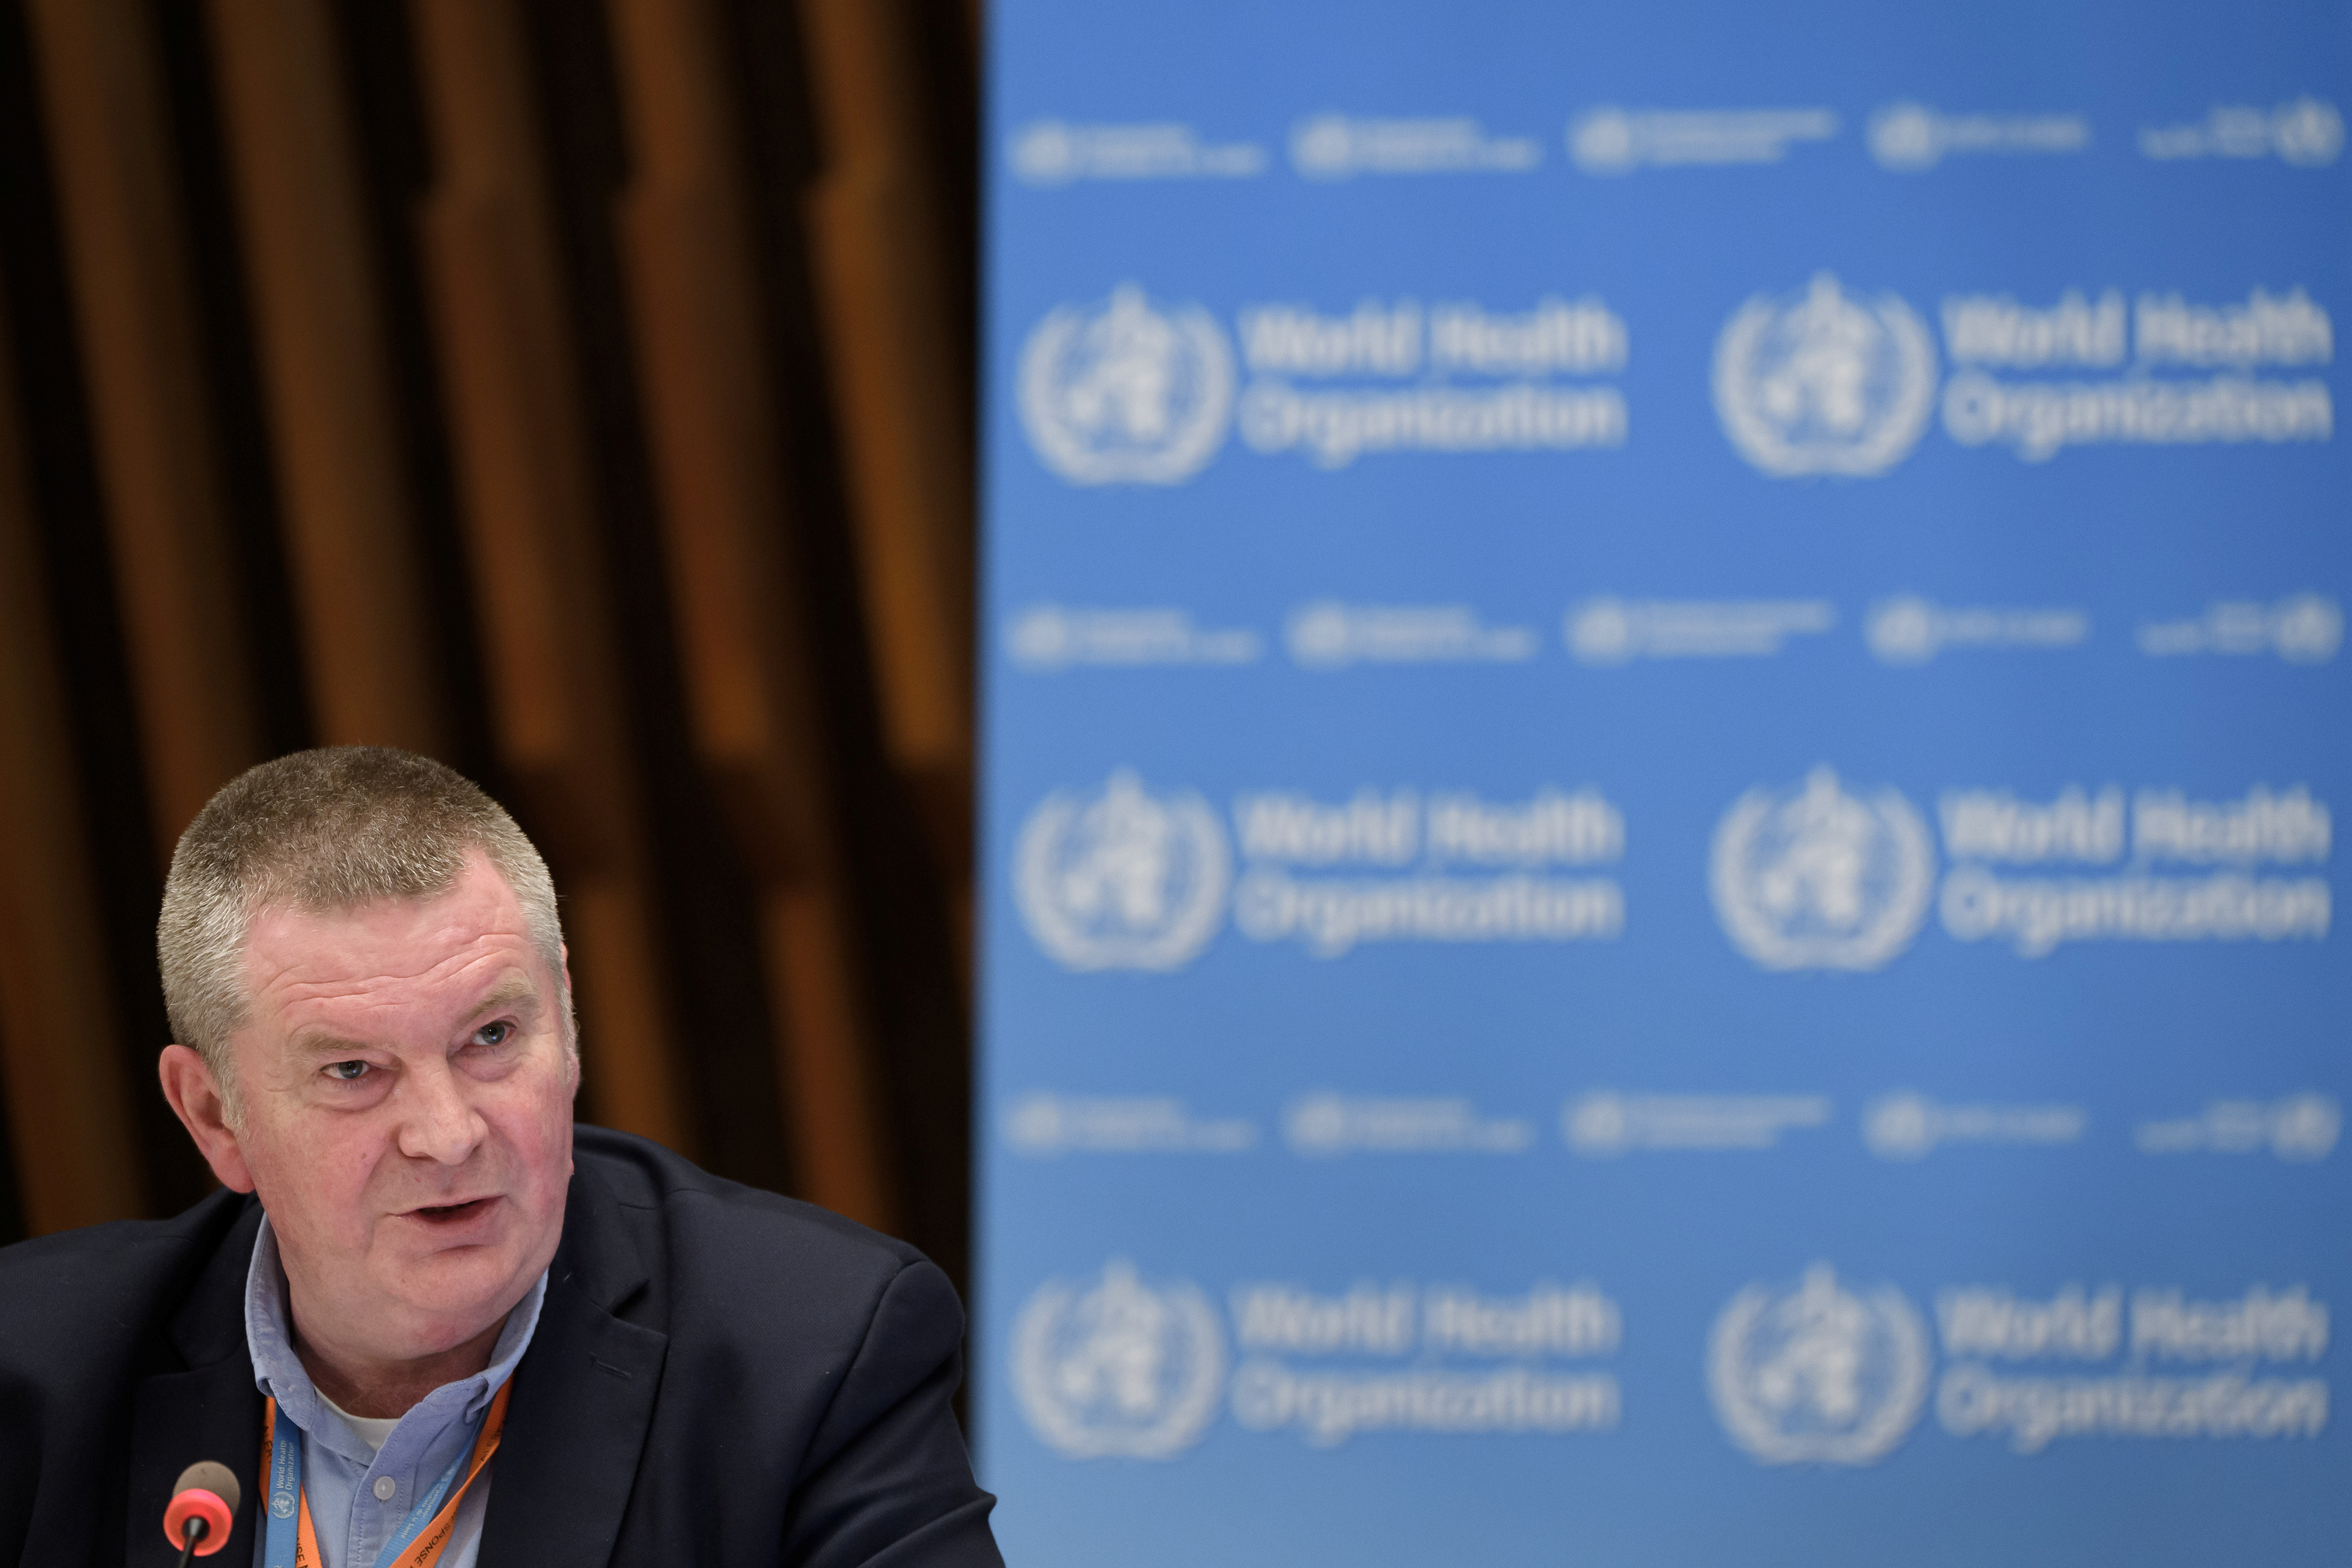 WHO Health Emergencies Programme head Michael Ryan attends a news conference organized by Geneva Association of United Nations Correspondents (ACANU) amid the COVID-19 outbreak, caused by the novel coronavirus, at the WHO headquarters in Geneva, Switzerland July 3, 2020. Fabrice Coffrini/Pool via REUTERS - RC2SLH93JUWY